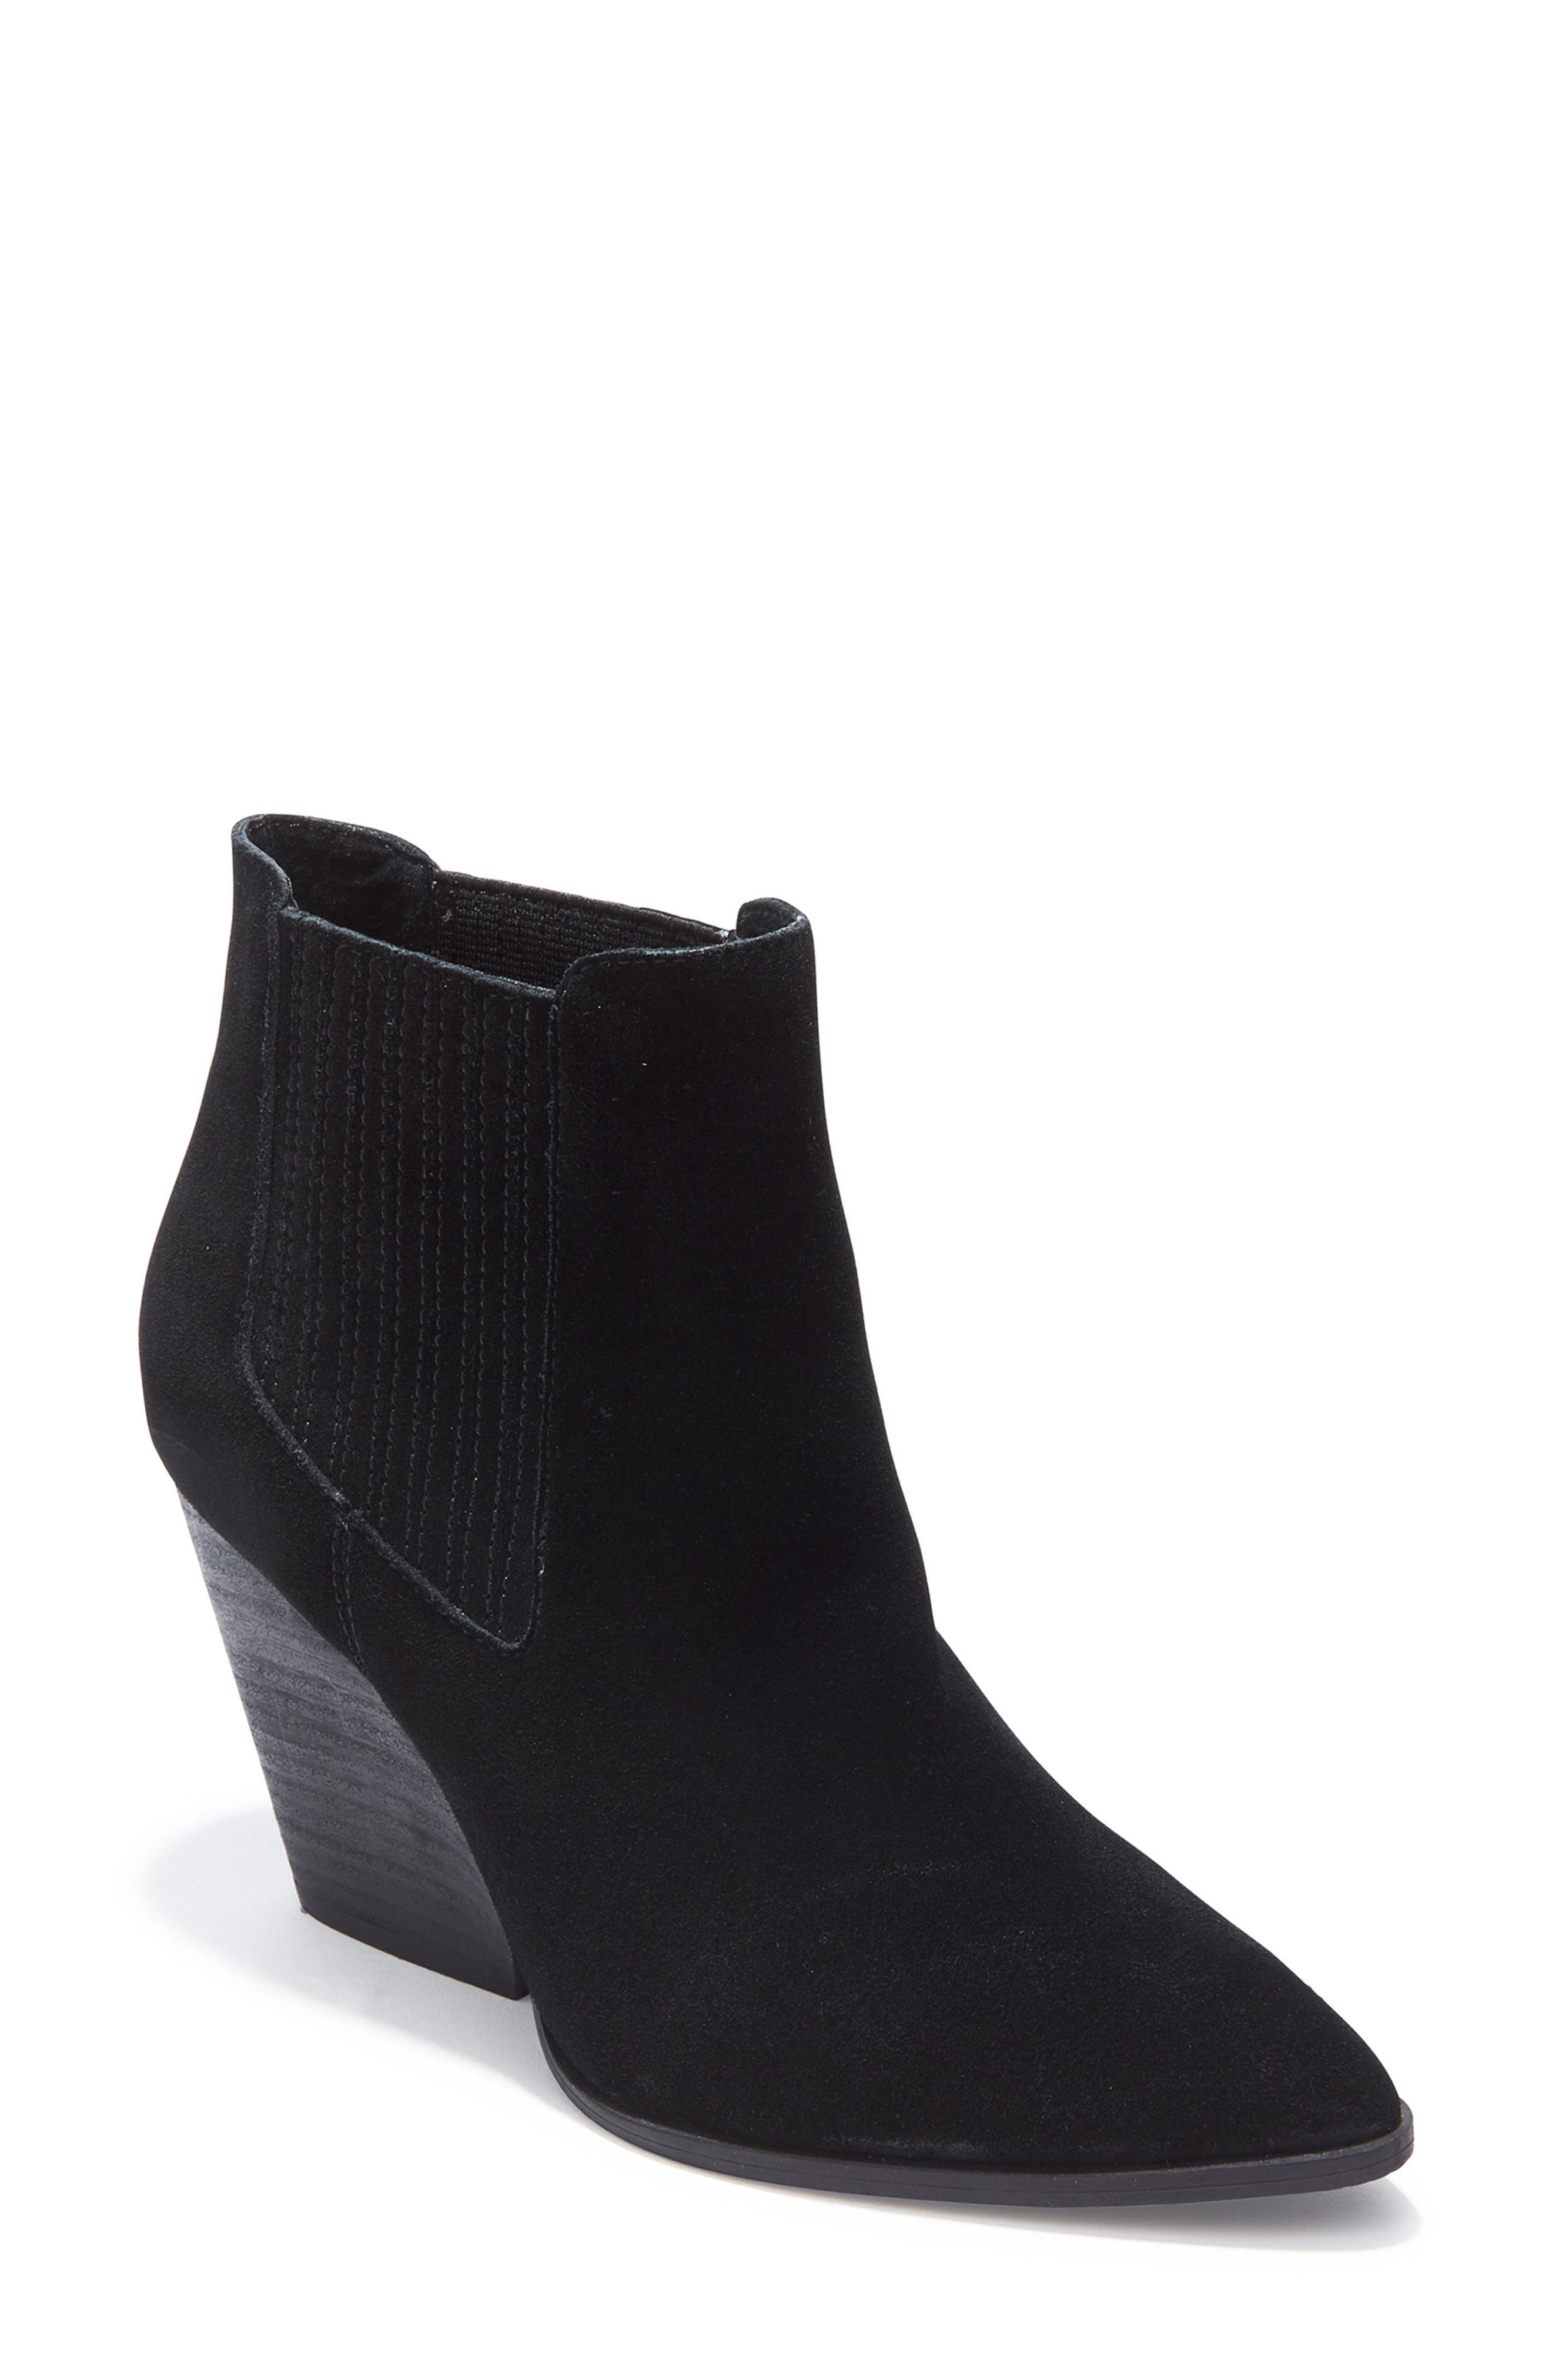 ADAM TUCKER BY ME TOO,                             Mason Wedge Bootie,                             Main thumbnail 1, color,                             014